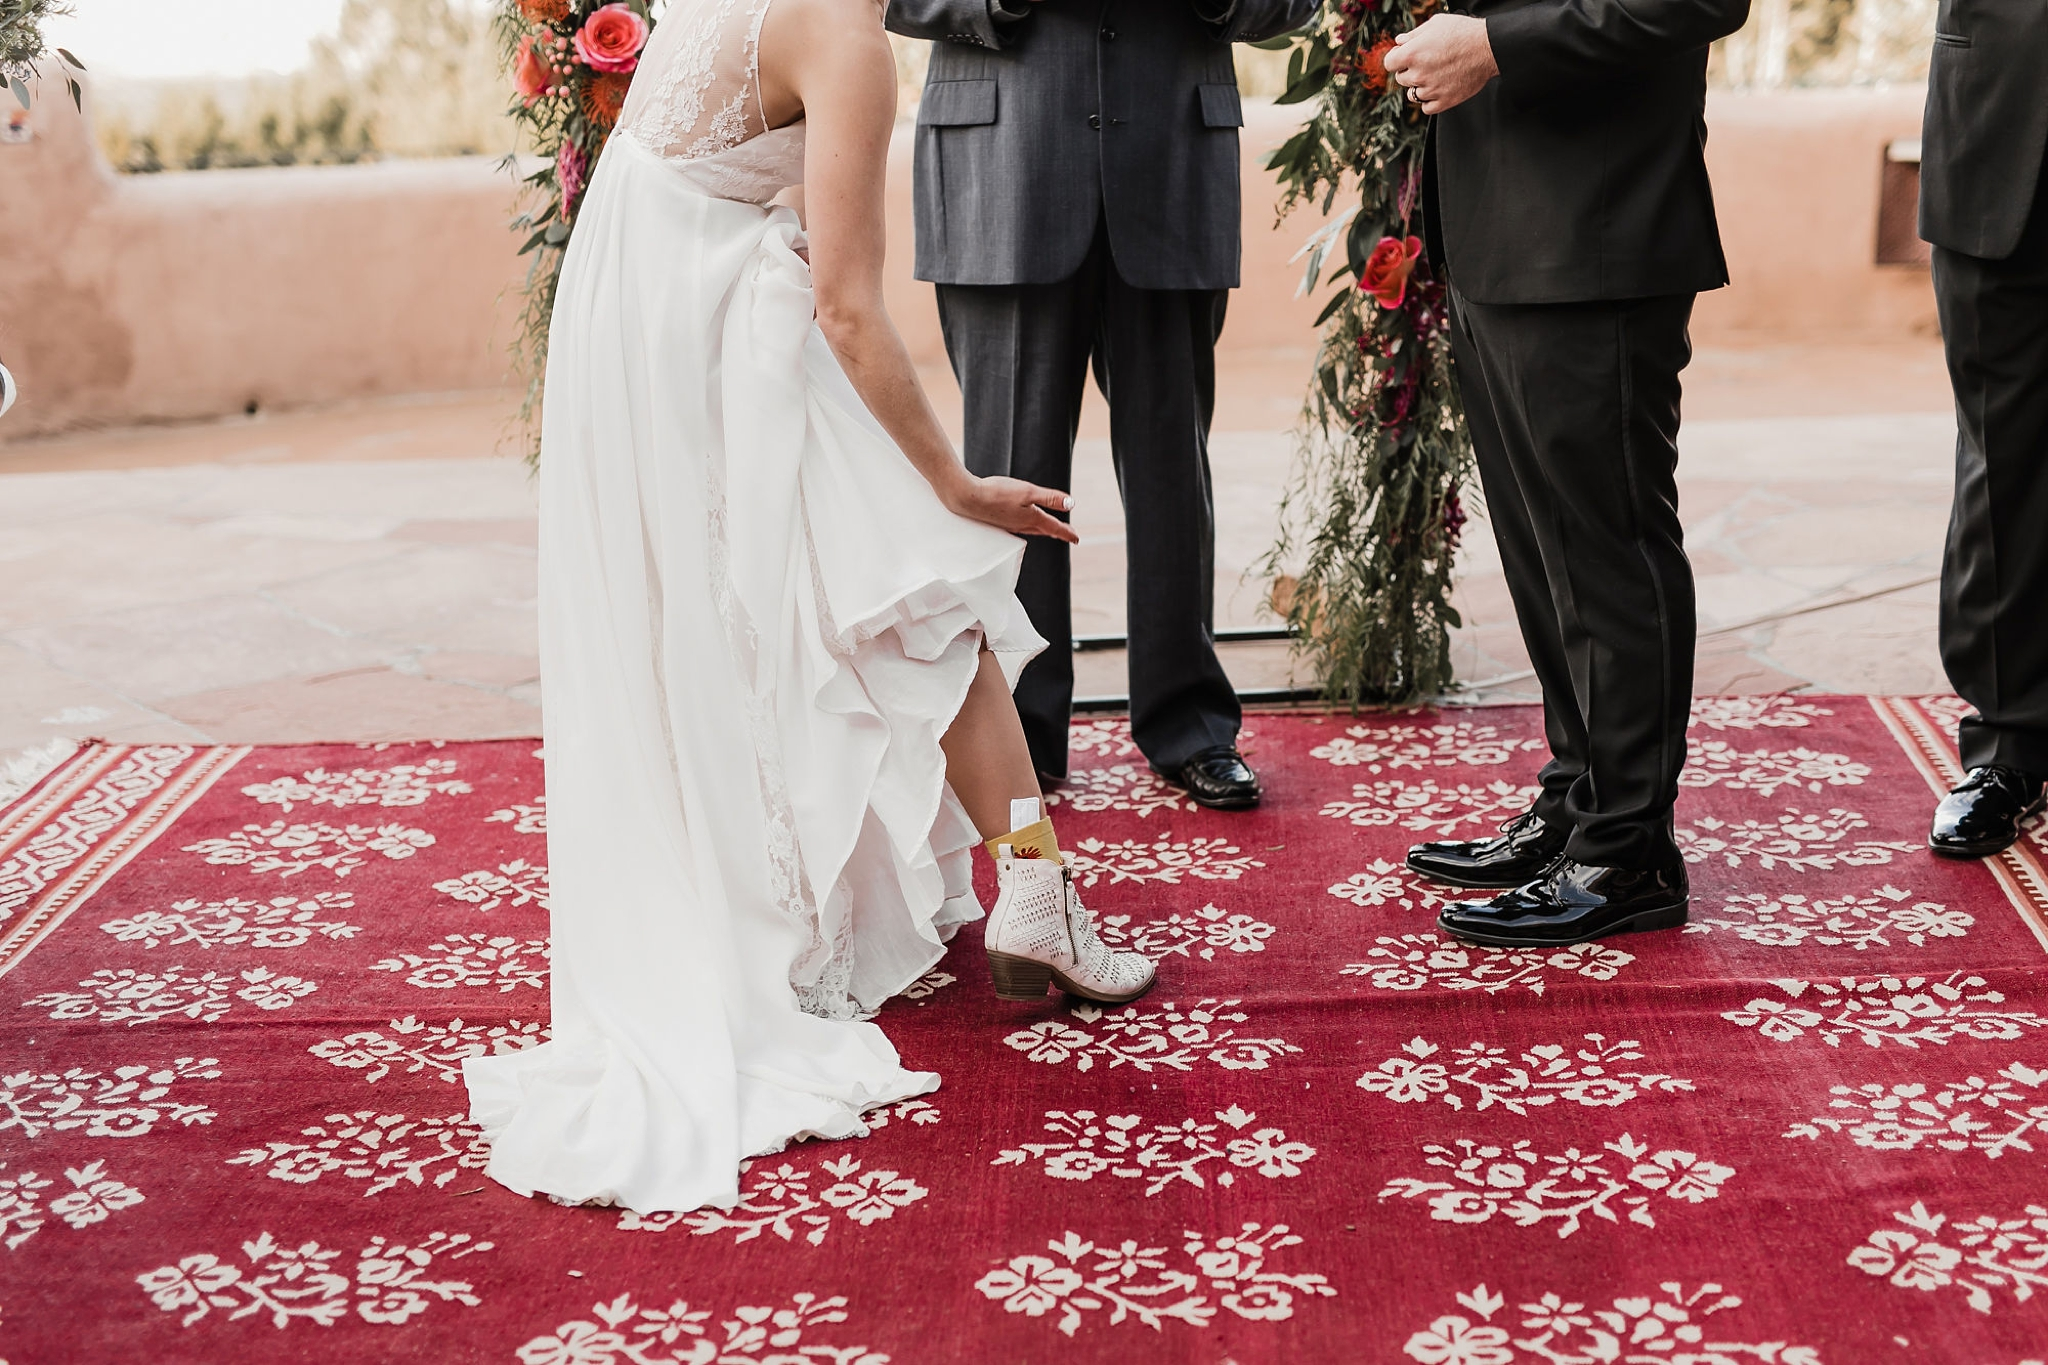 Alicia+lucia+photography+-+albuquerque+wedding+photographer+-+santa+fe+wedding+photography+-+new+mexico+wedding+photographer+-+new+mexico+wedding+-+new+mexico+wedding+-+colorado+wedding+-+bridal+shoes+-+bridal+inspo_0029.jpg